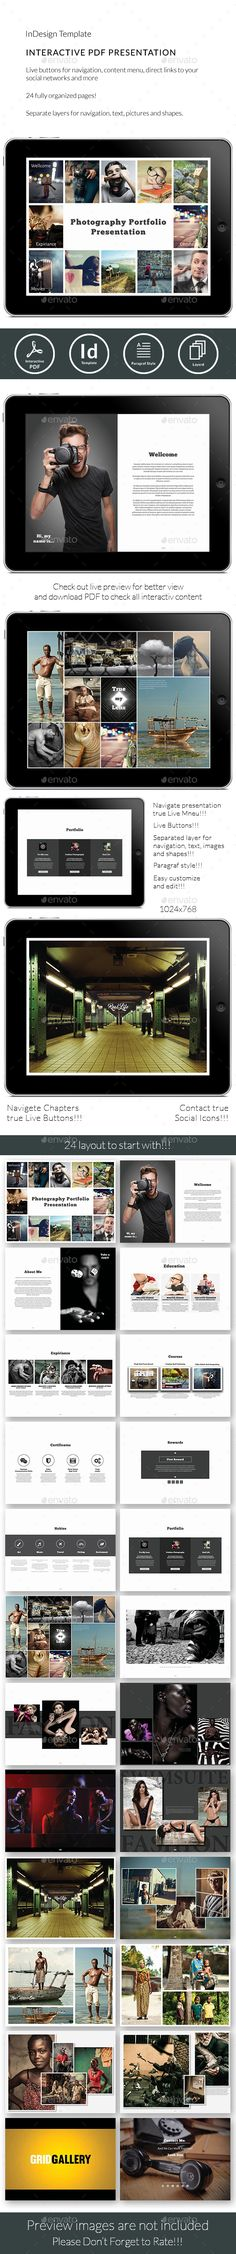 Tablet Interactive PDF Photographer Portfolio No7 by Milos83 Tablet Interactive PDF Photographer Portfolio No7 Great way to present your work true interactive PDF! You can use this templat